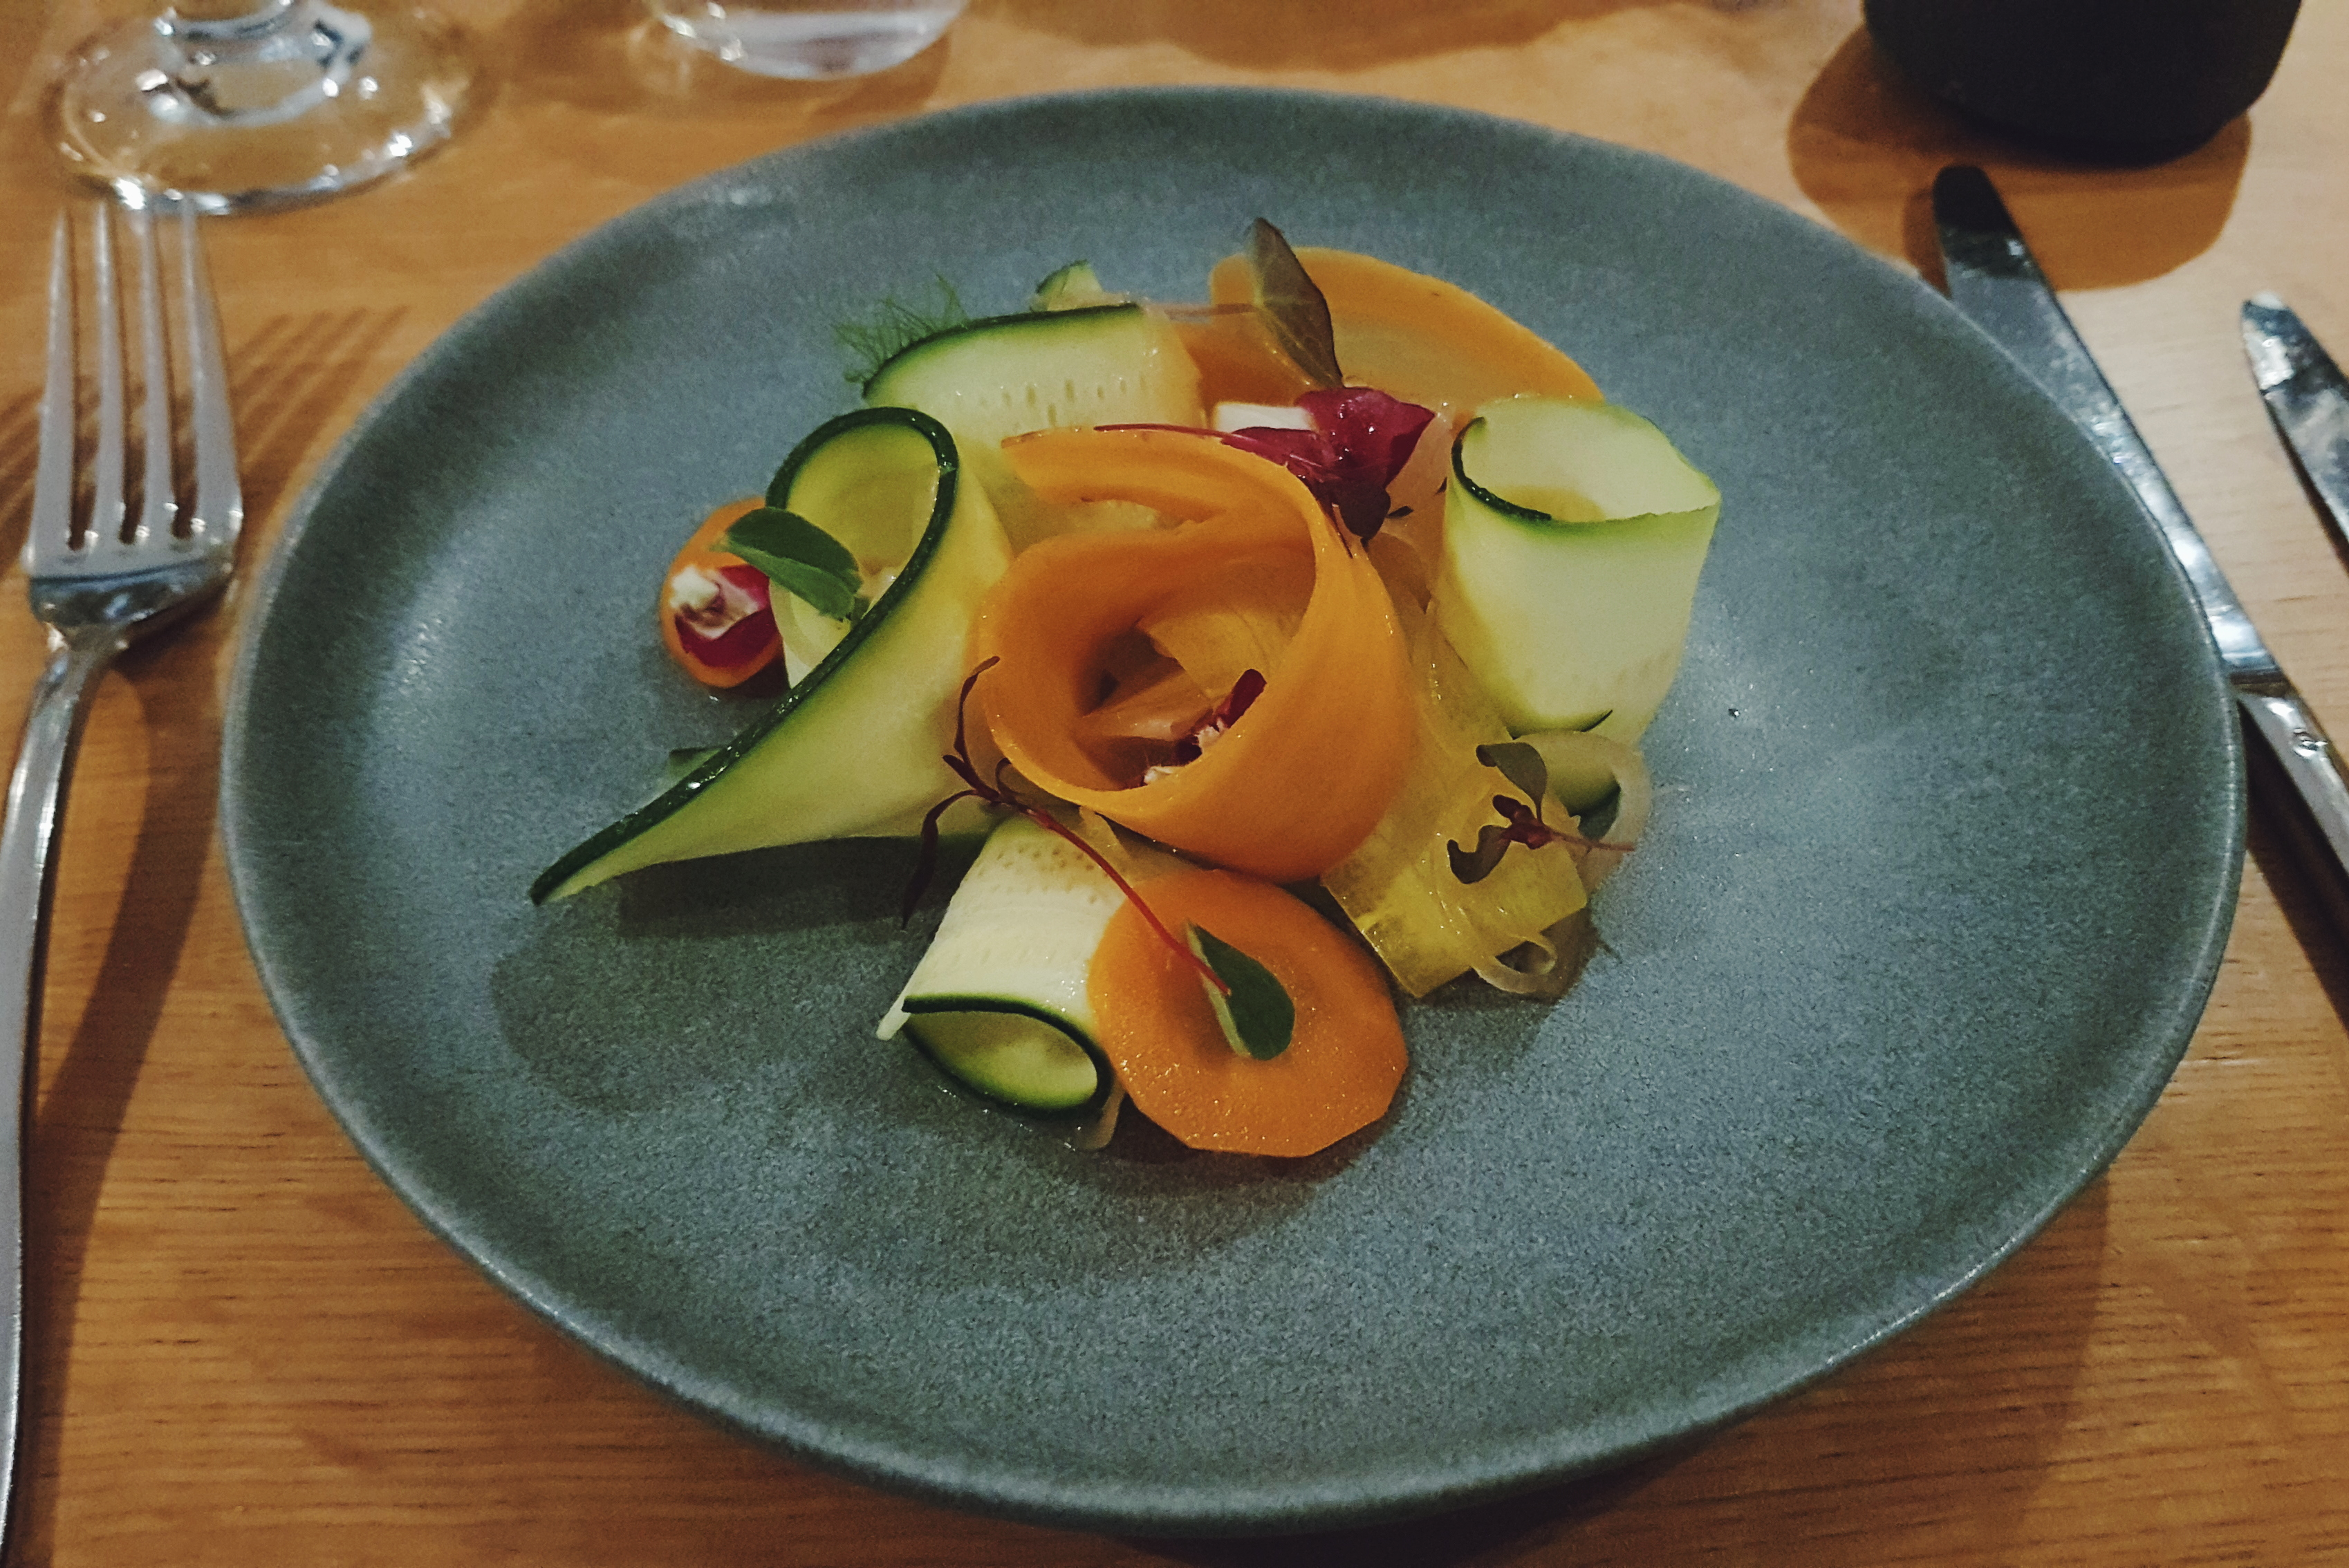 Vegan salad starter at The Gannet Glasgow